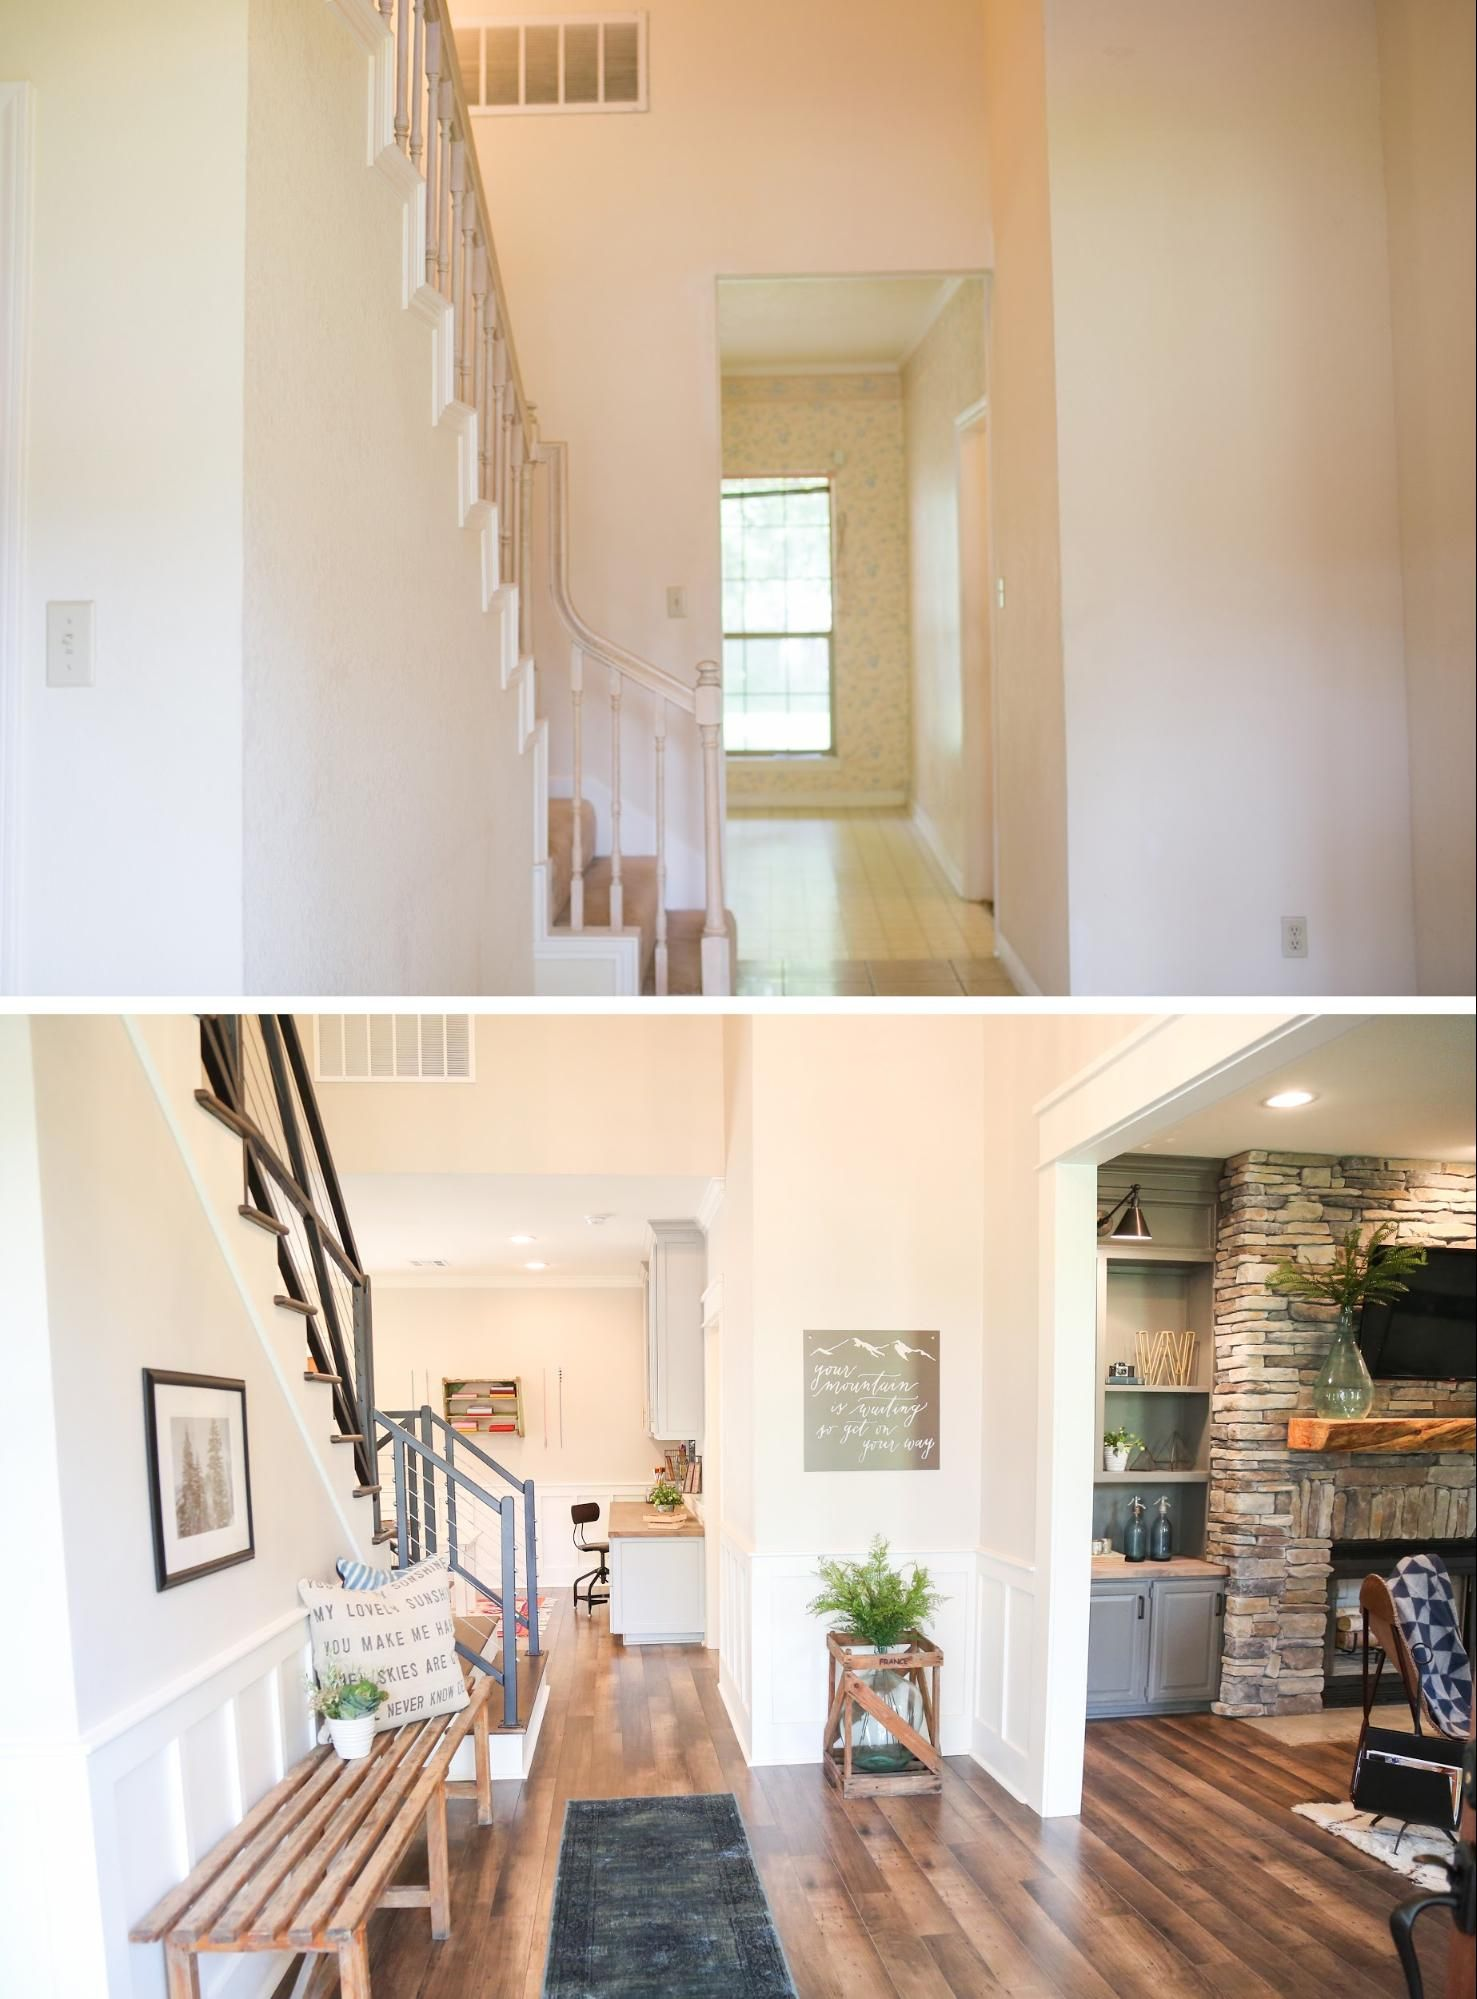 Idea 3 charm with new finishes before amp after family beach homes - Lackluster Fixer Changes To Contemporary Charm For Young Family As Chip Joanna Show Luke